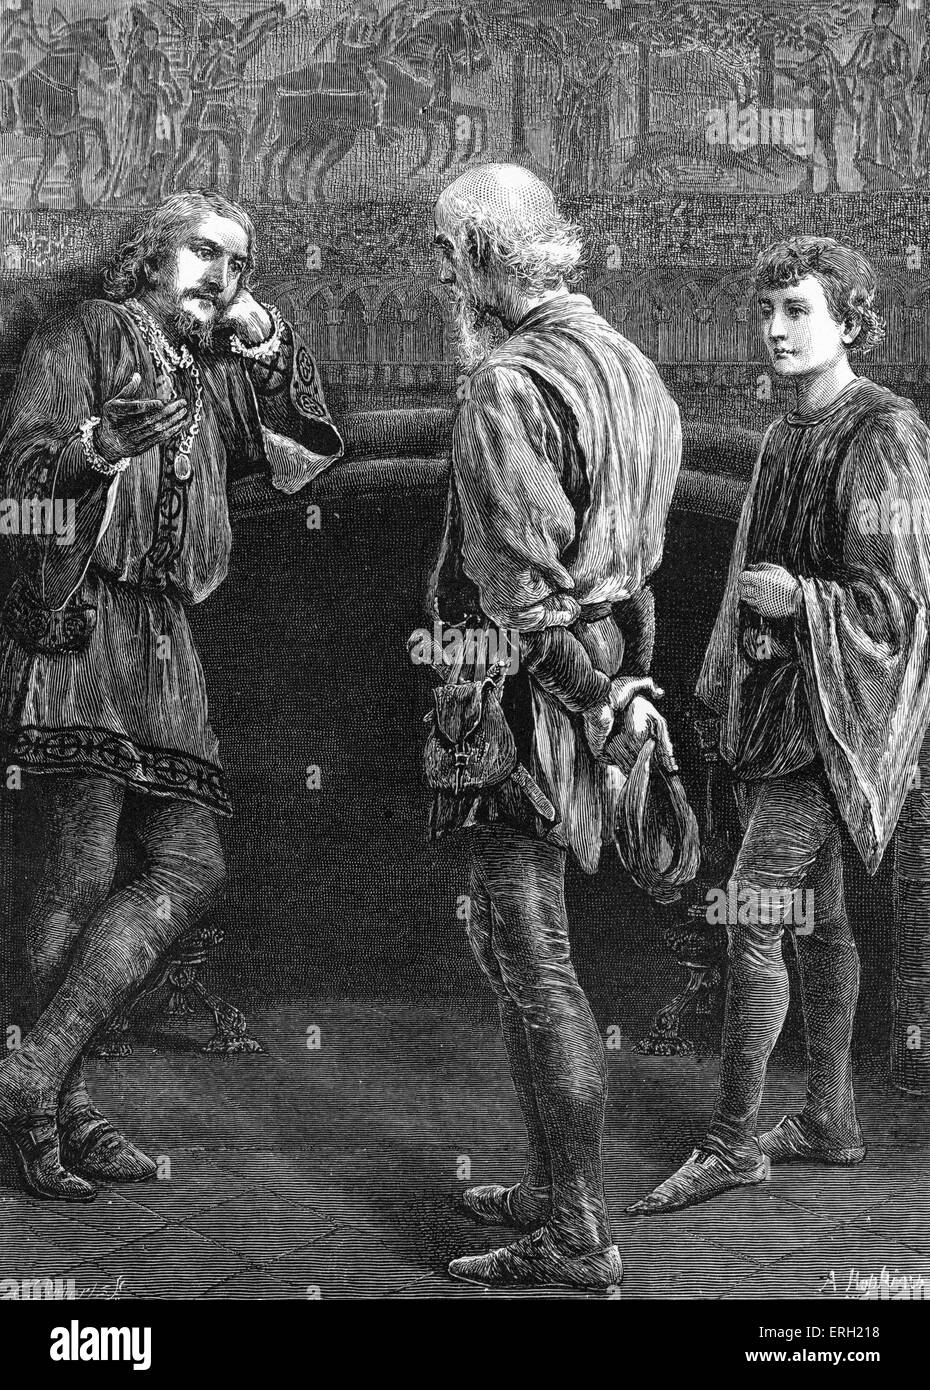 an analysis of politics in hamlet by william shakespeare Hamlet by william shakespeare we have essays on the following topics that may be of interest to you character (1294) , hamlet (631) , ophelia (231) , polonius (224) , laertes (186).